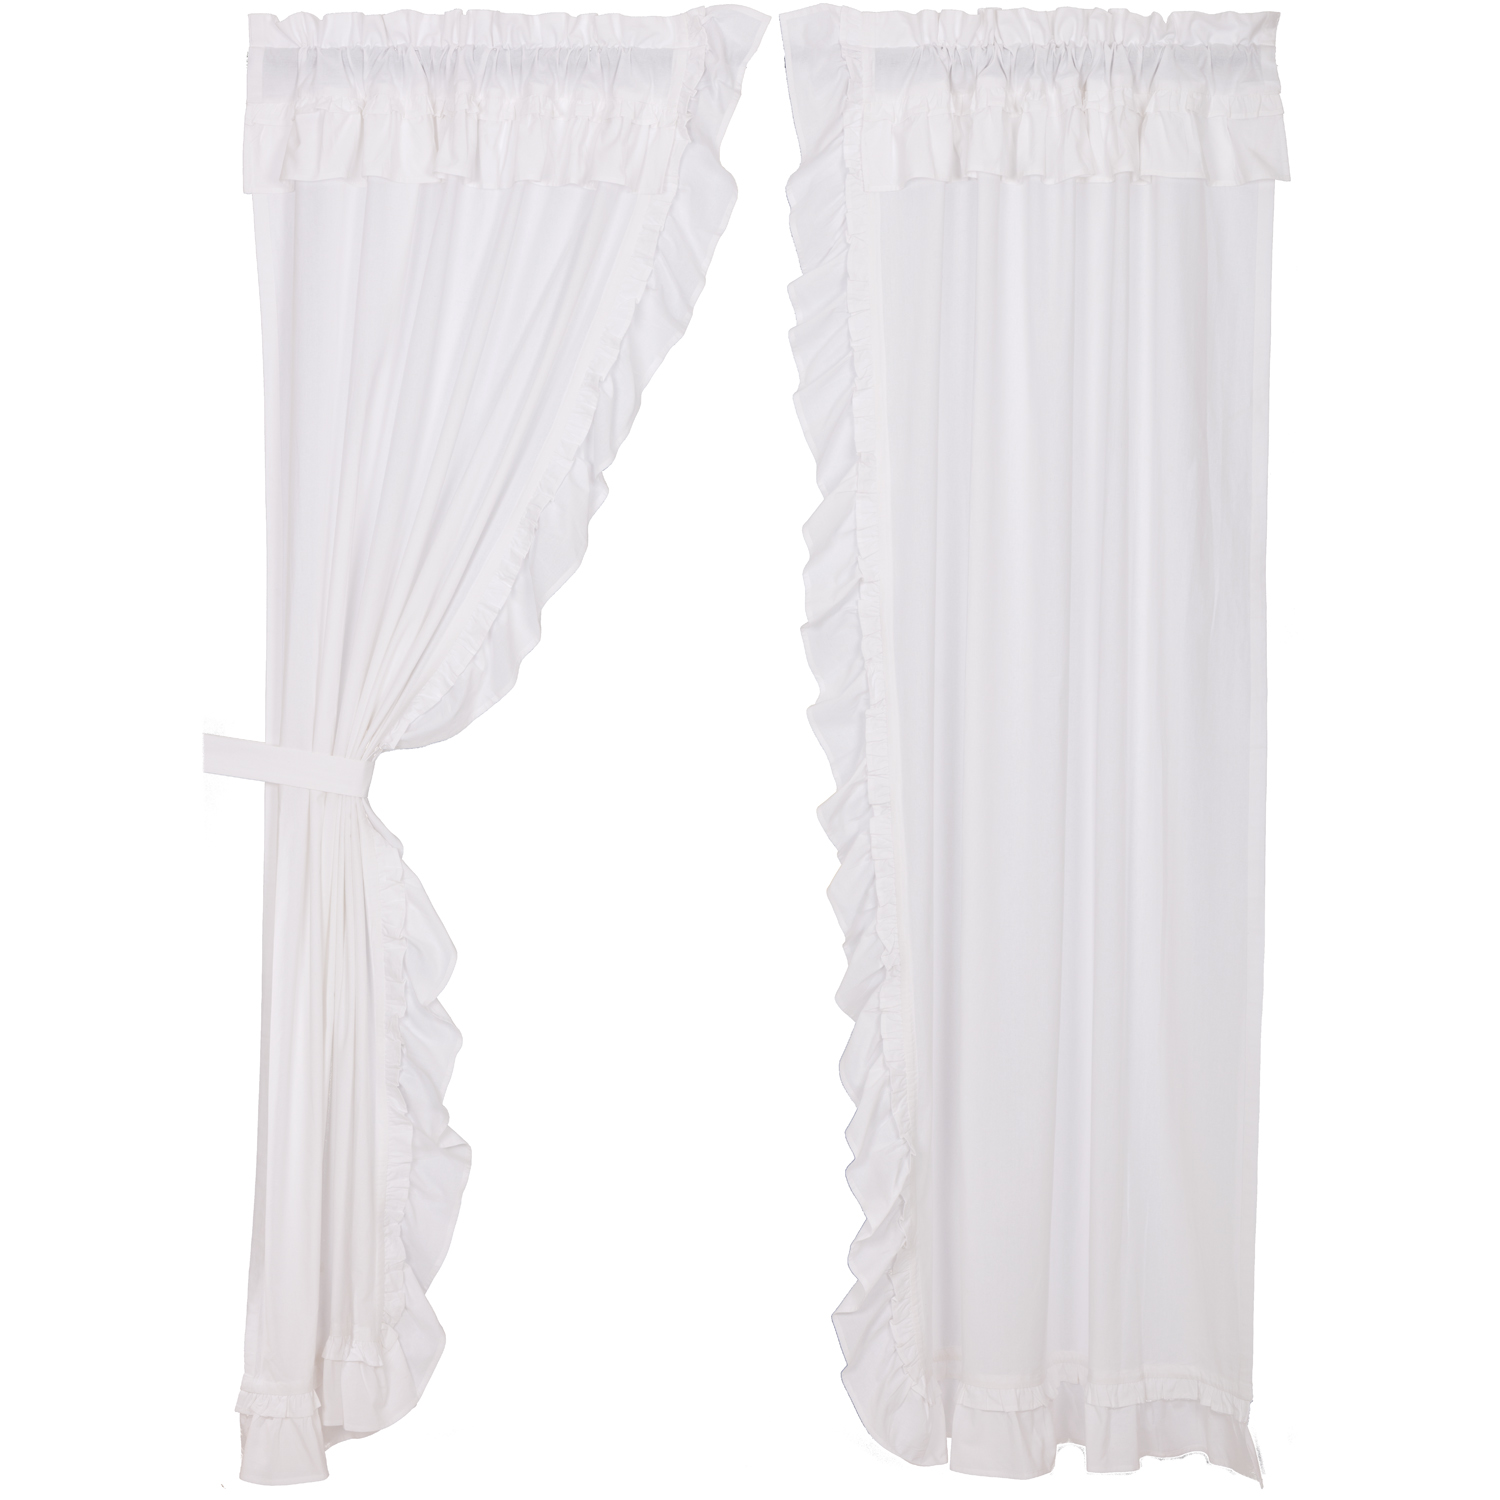 Muslin Ruffled Bleached White Panel Set of 2 84x40